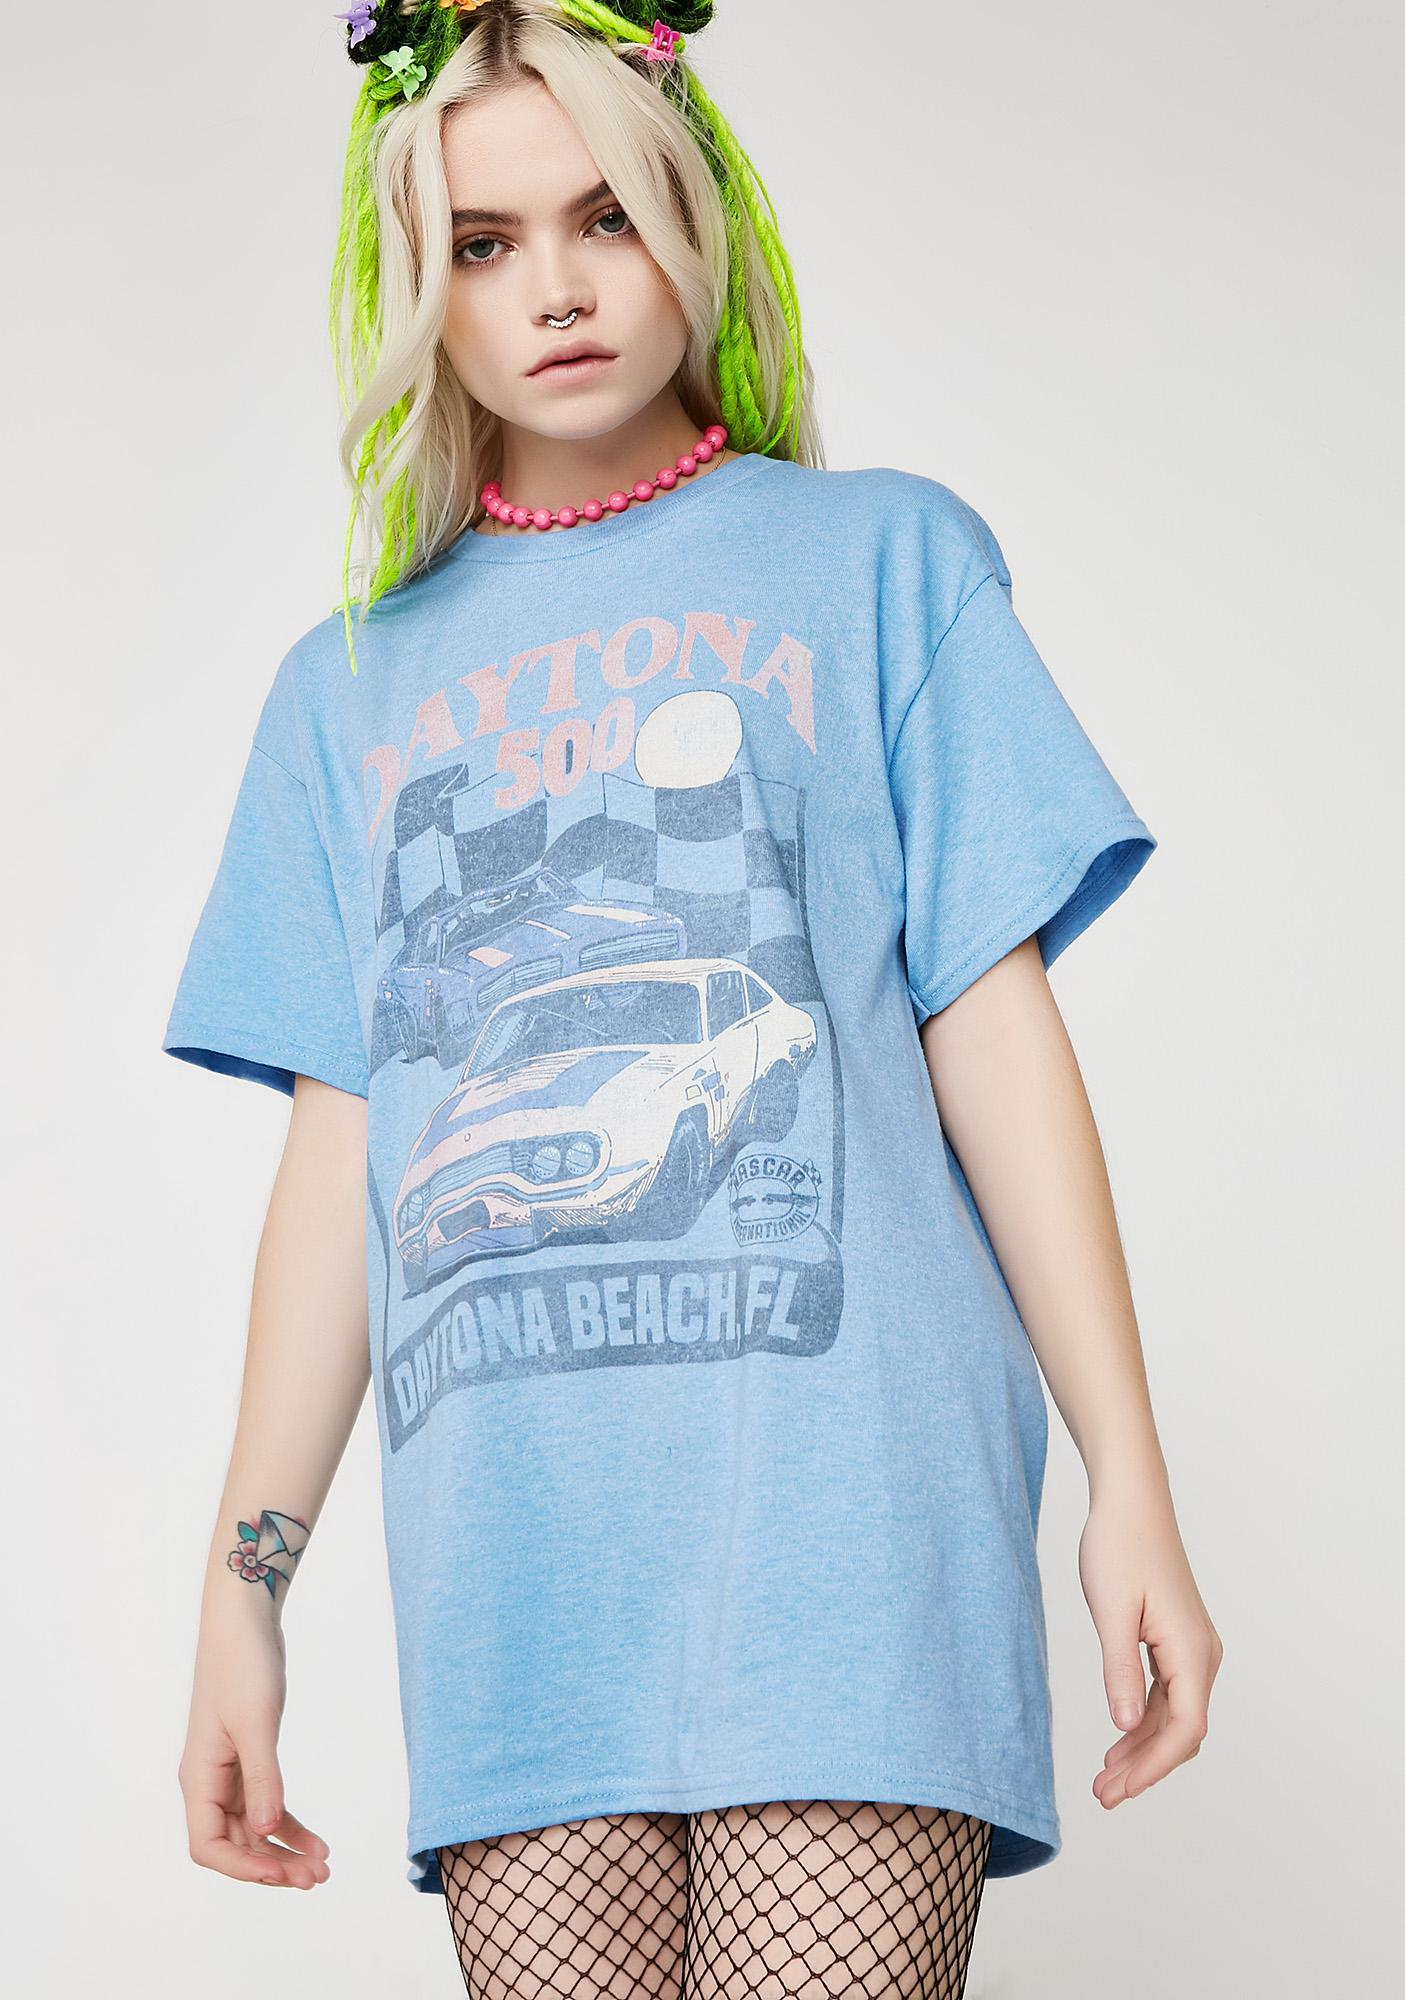 Need For Speed Graphic Tee